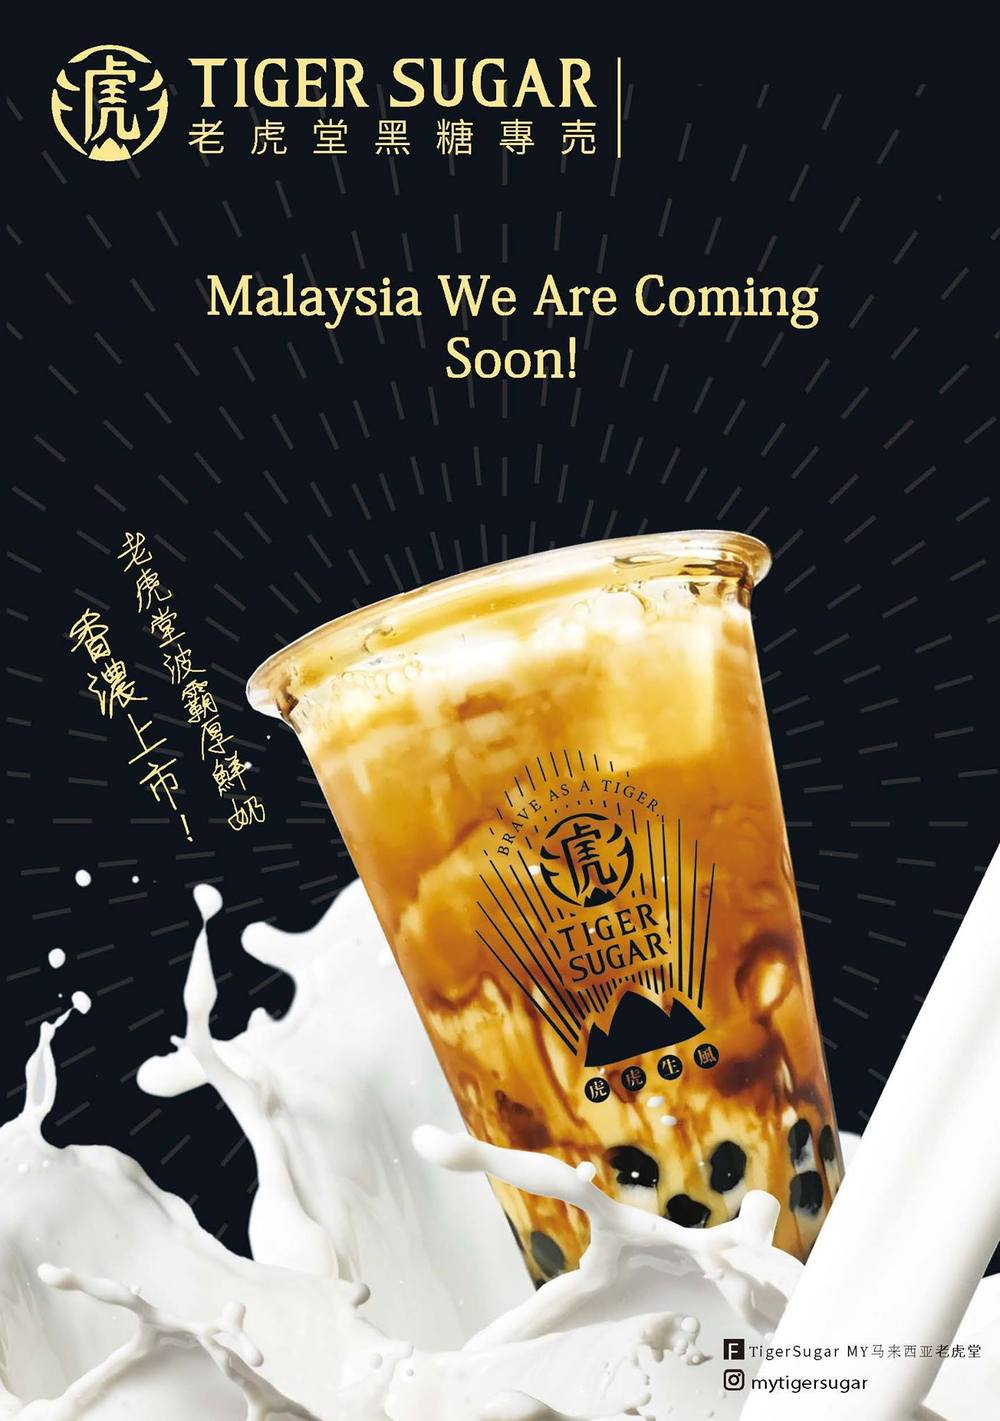 News about the Tiger Sugar opening in Malaysia broke around this September.